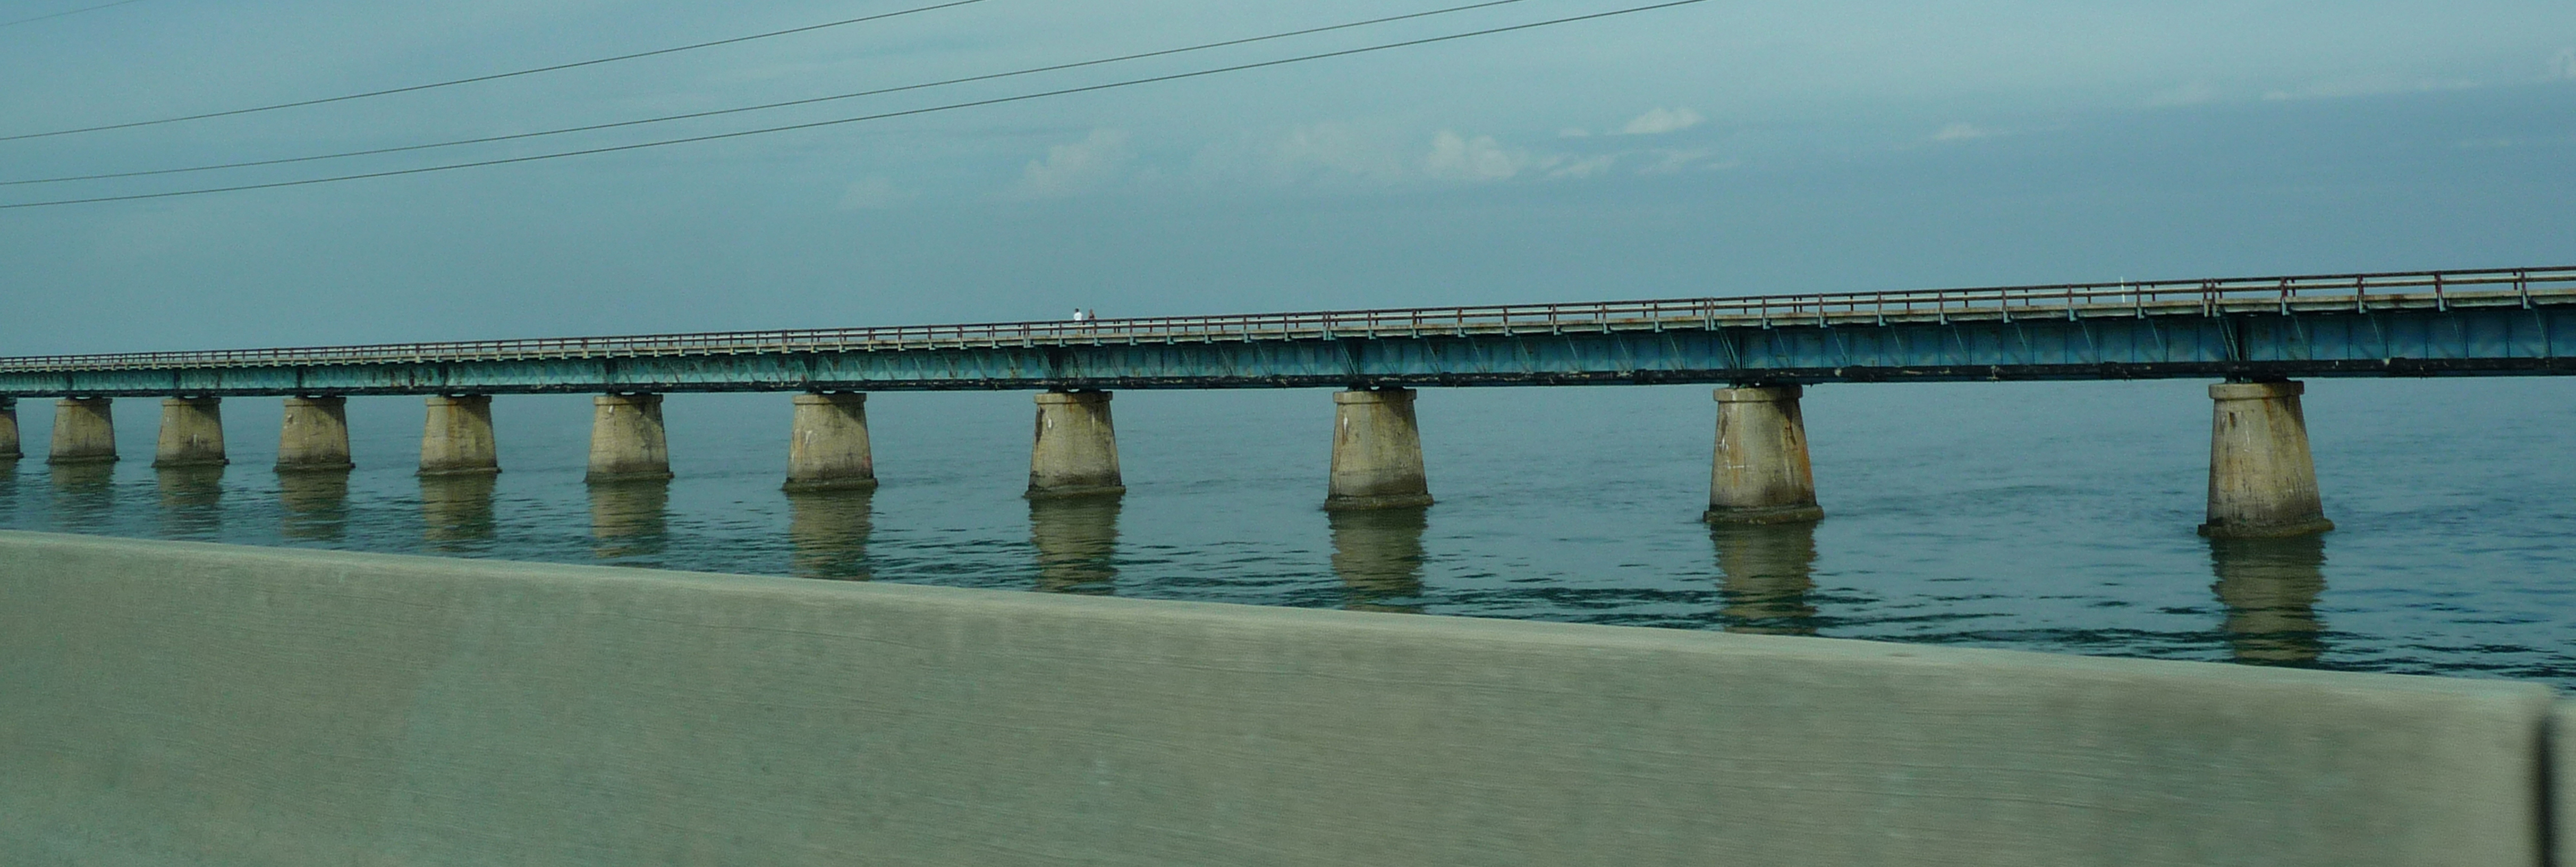 7 mile bridge